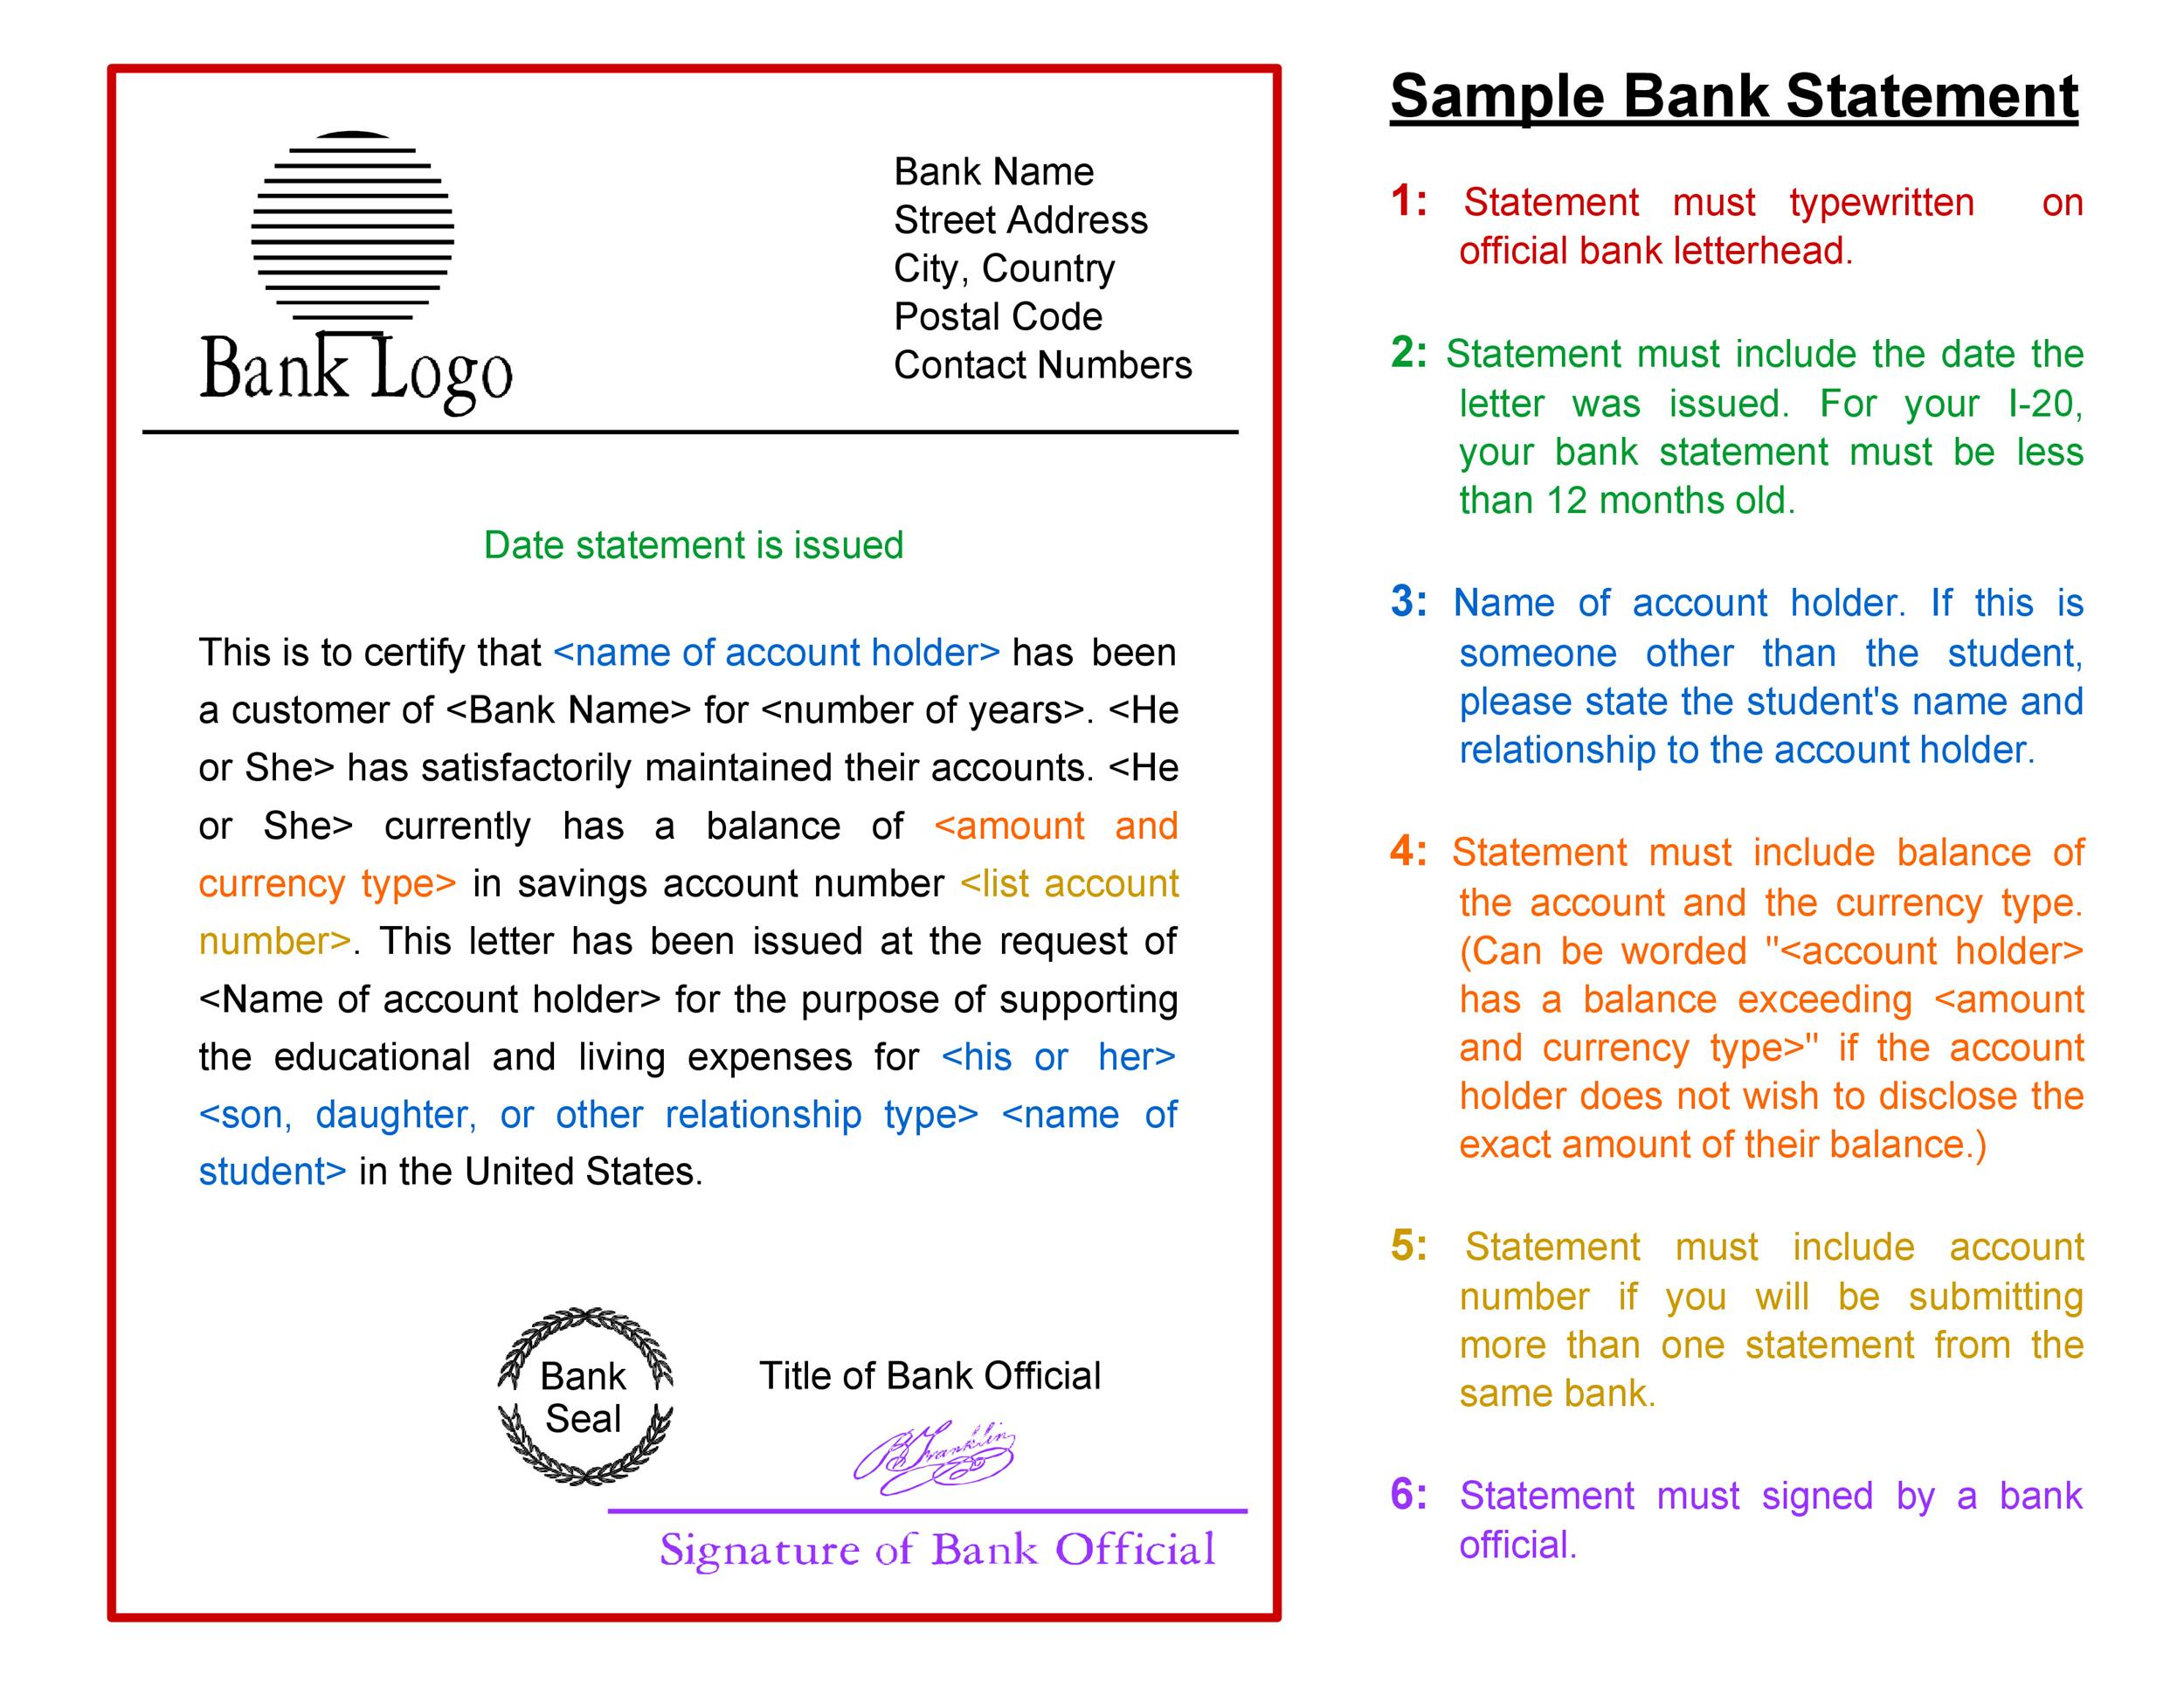 23 Editable Bank Statement Templates FREE ᐅ Template Lab